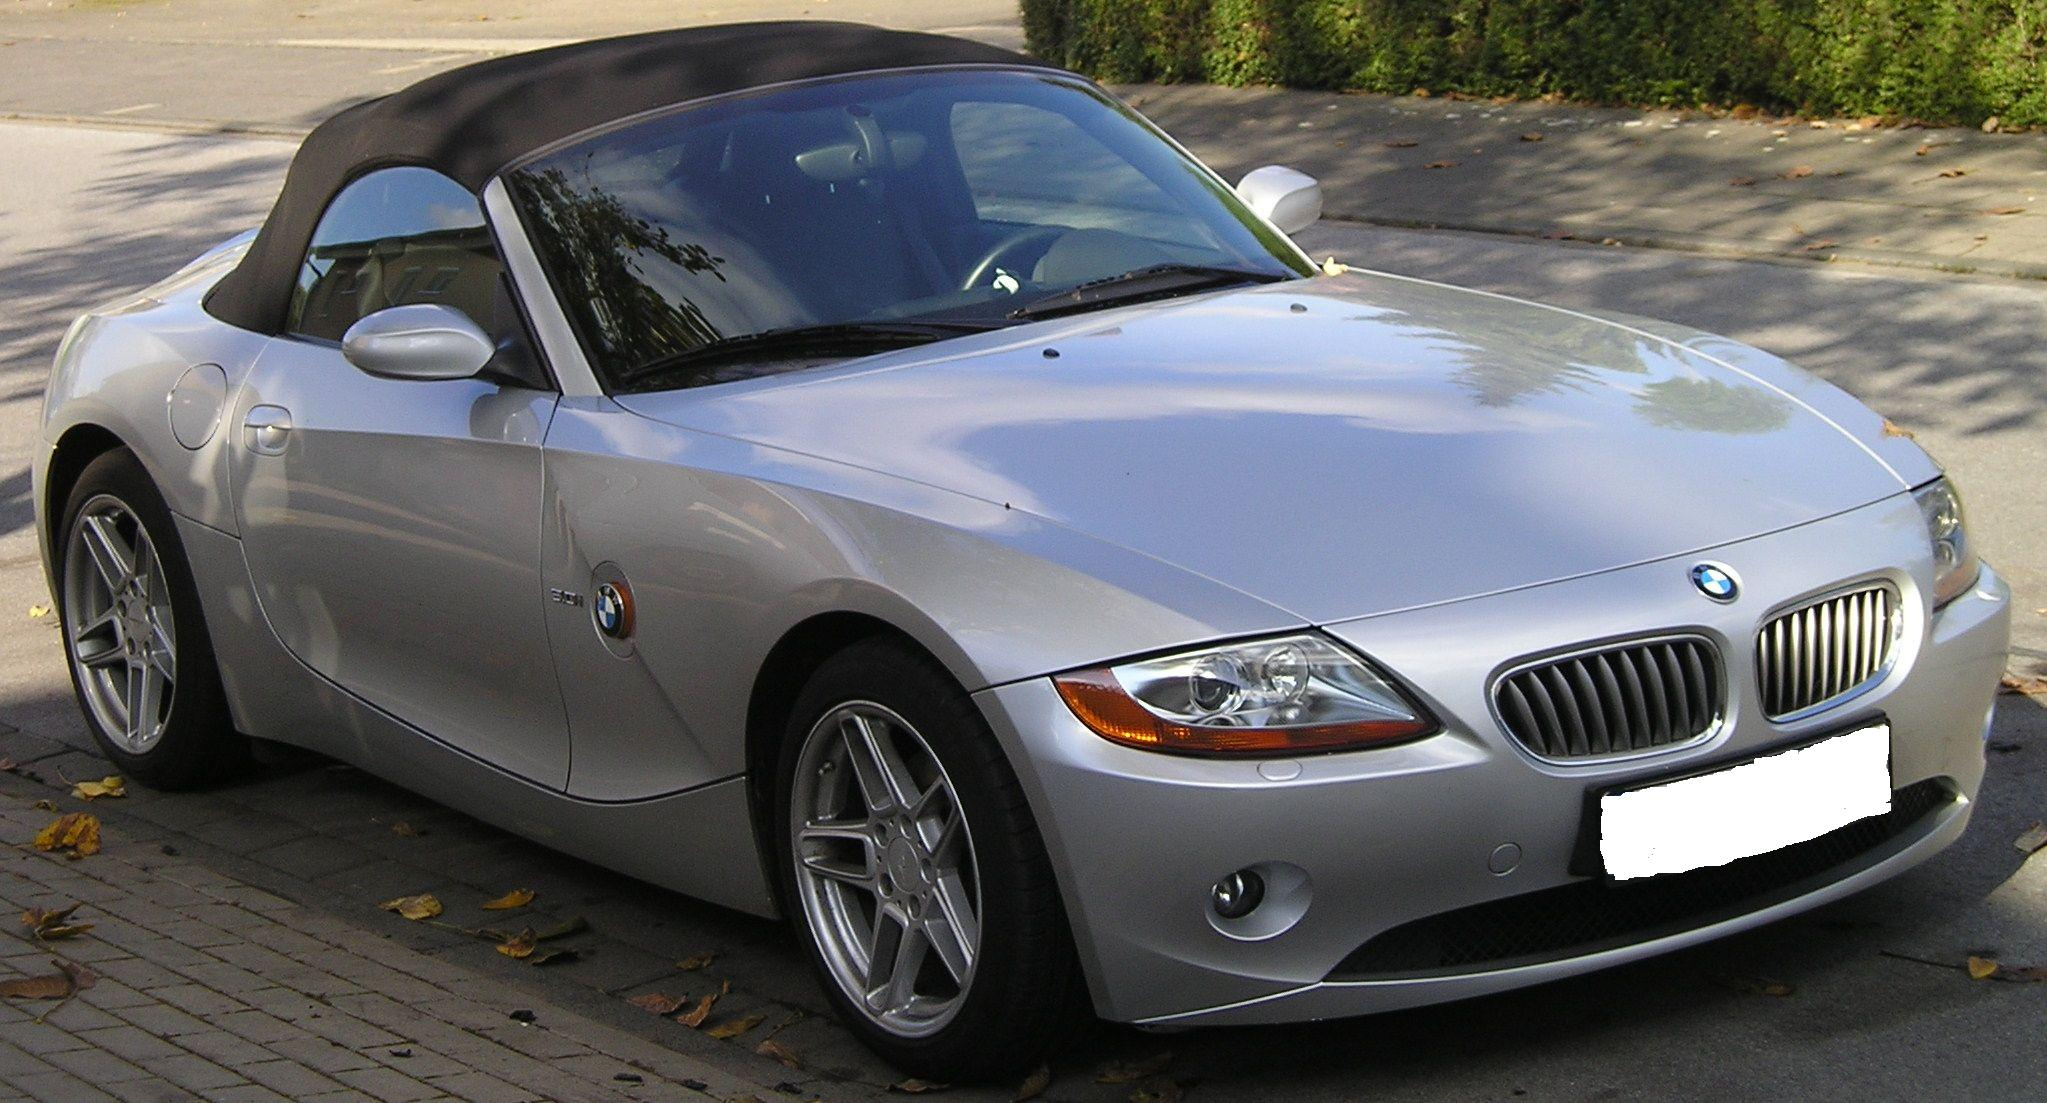 Top Best Used Sports Cars - Top 5 sports cars